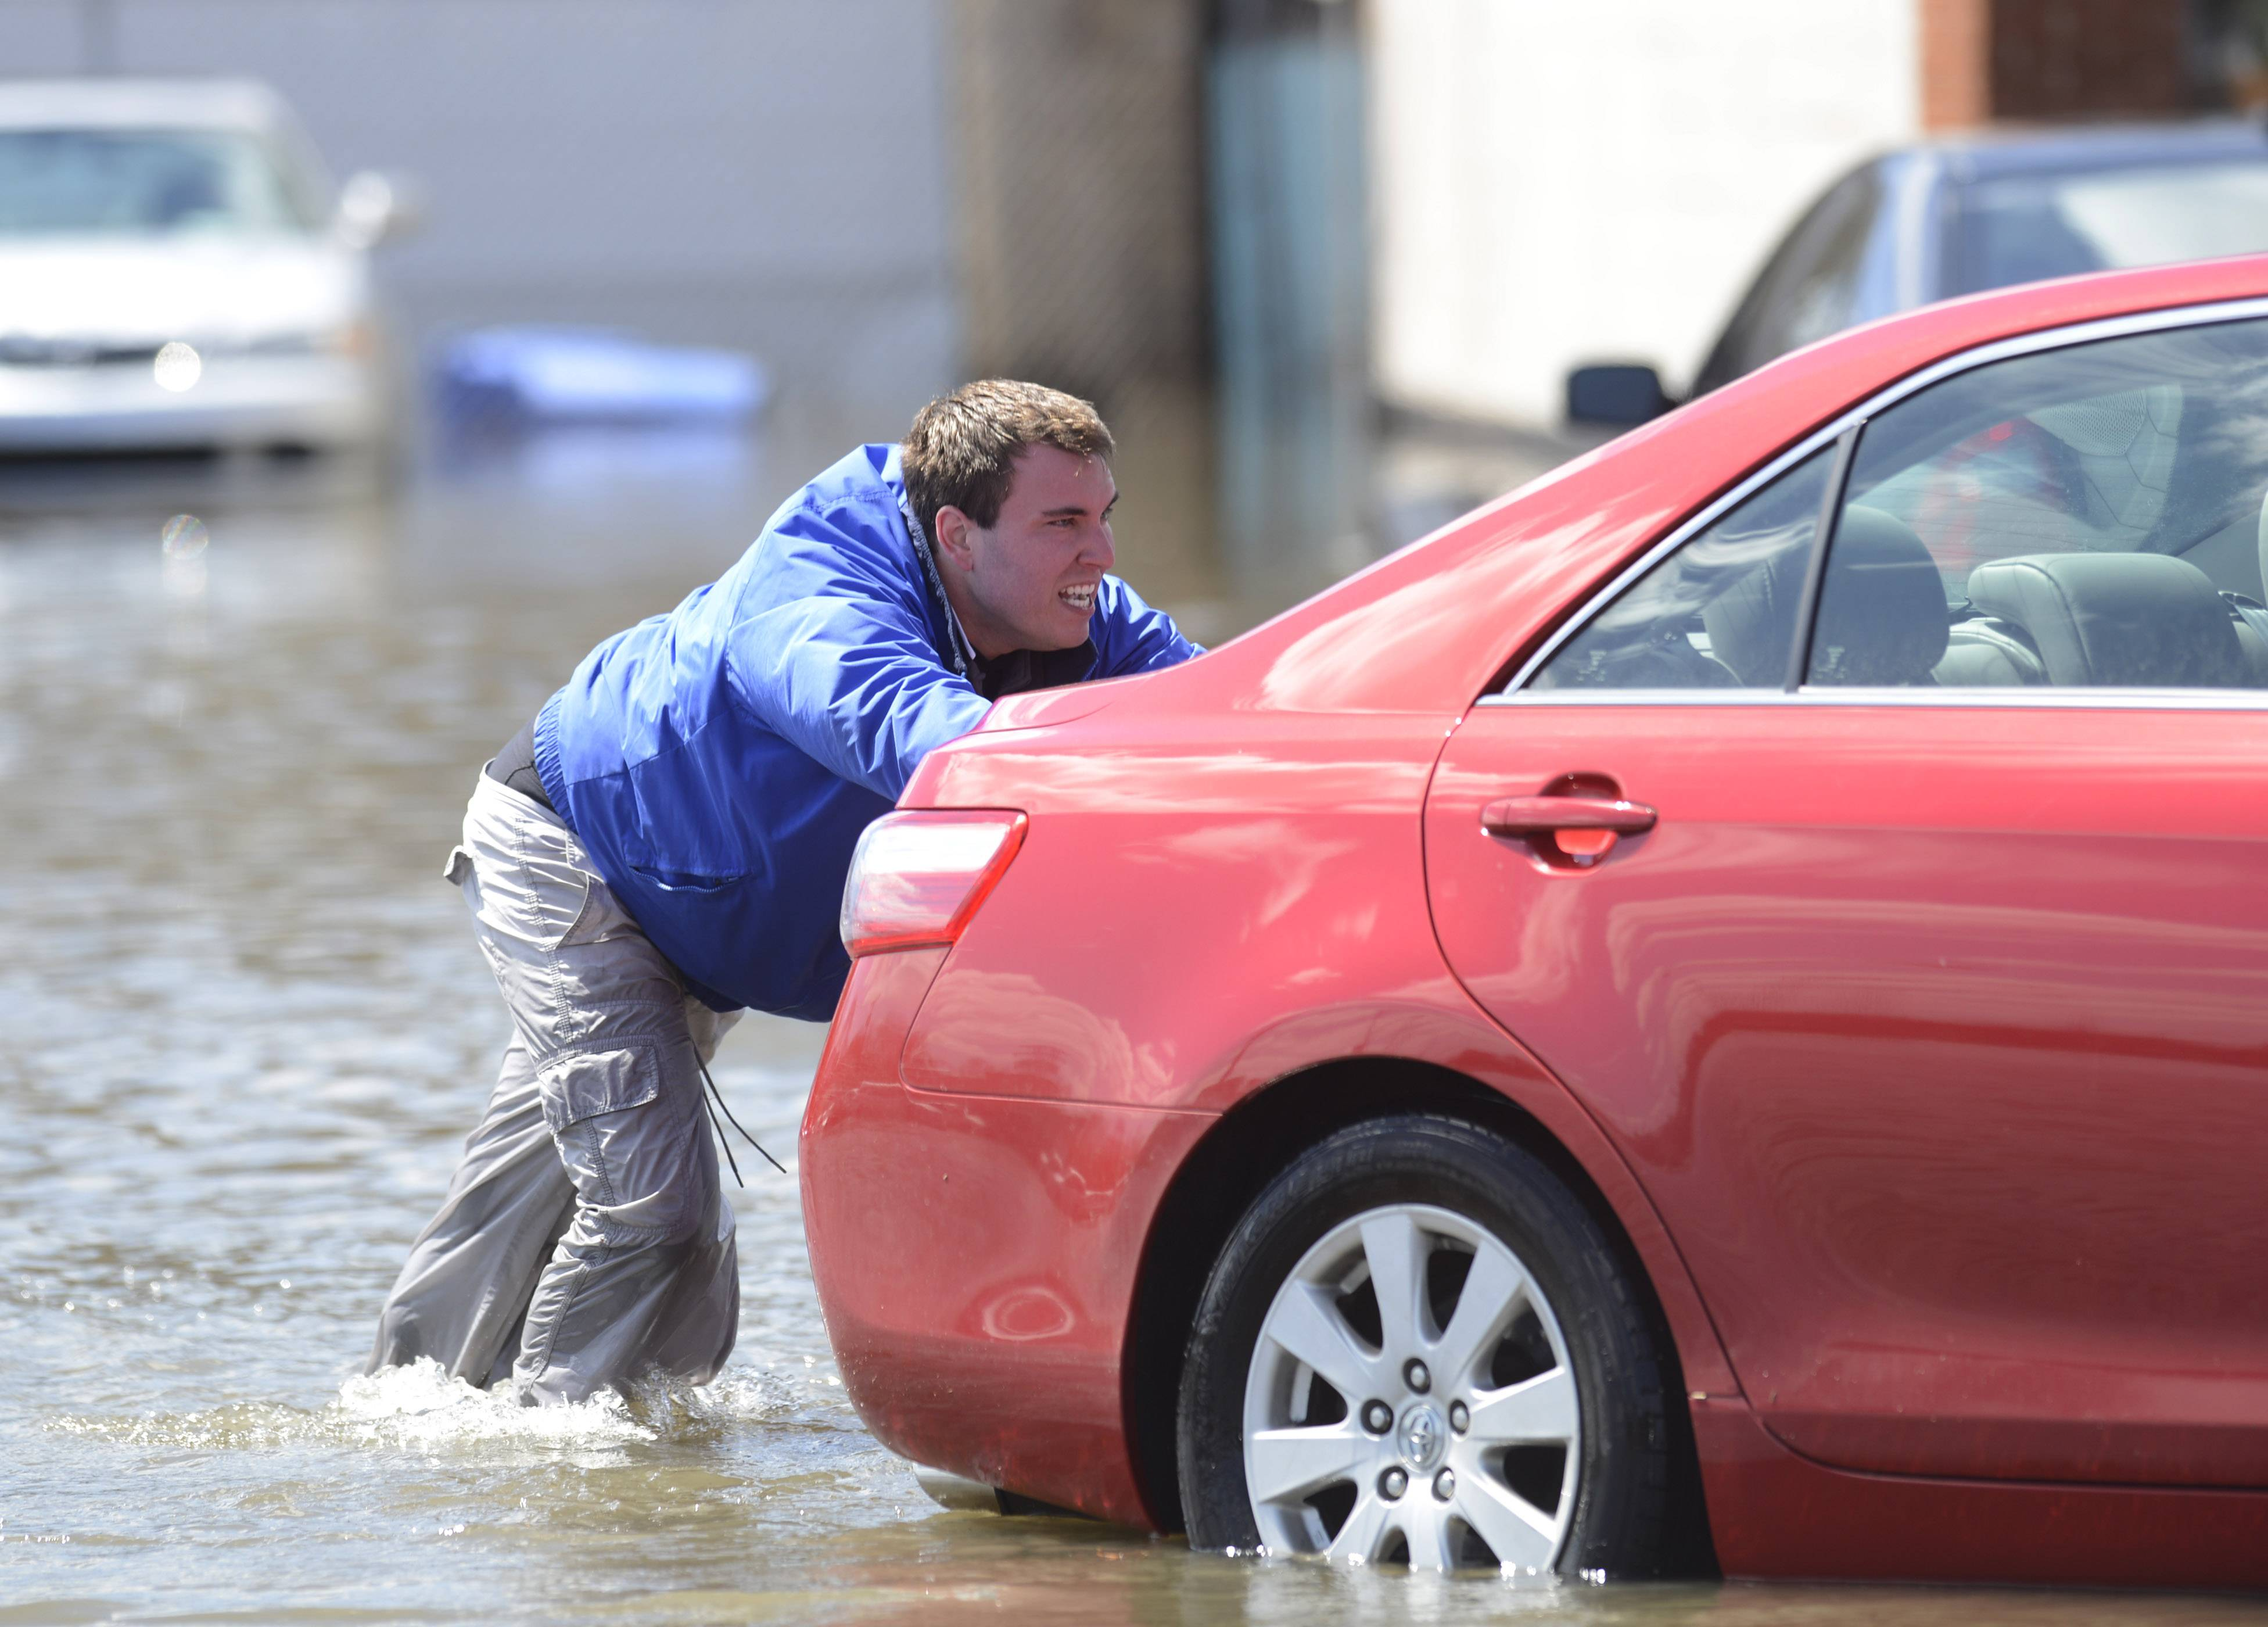 Rob Burns helps push an auto from a flooded used car lot toward higher ground in Des Plaines Saturday. Burns and his partner avoided running the operable cars in the higher water, then started them once they were safely on higher ground.